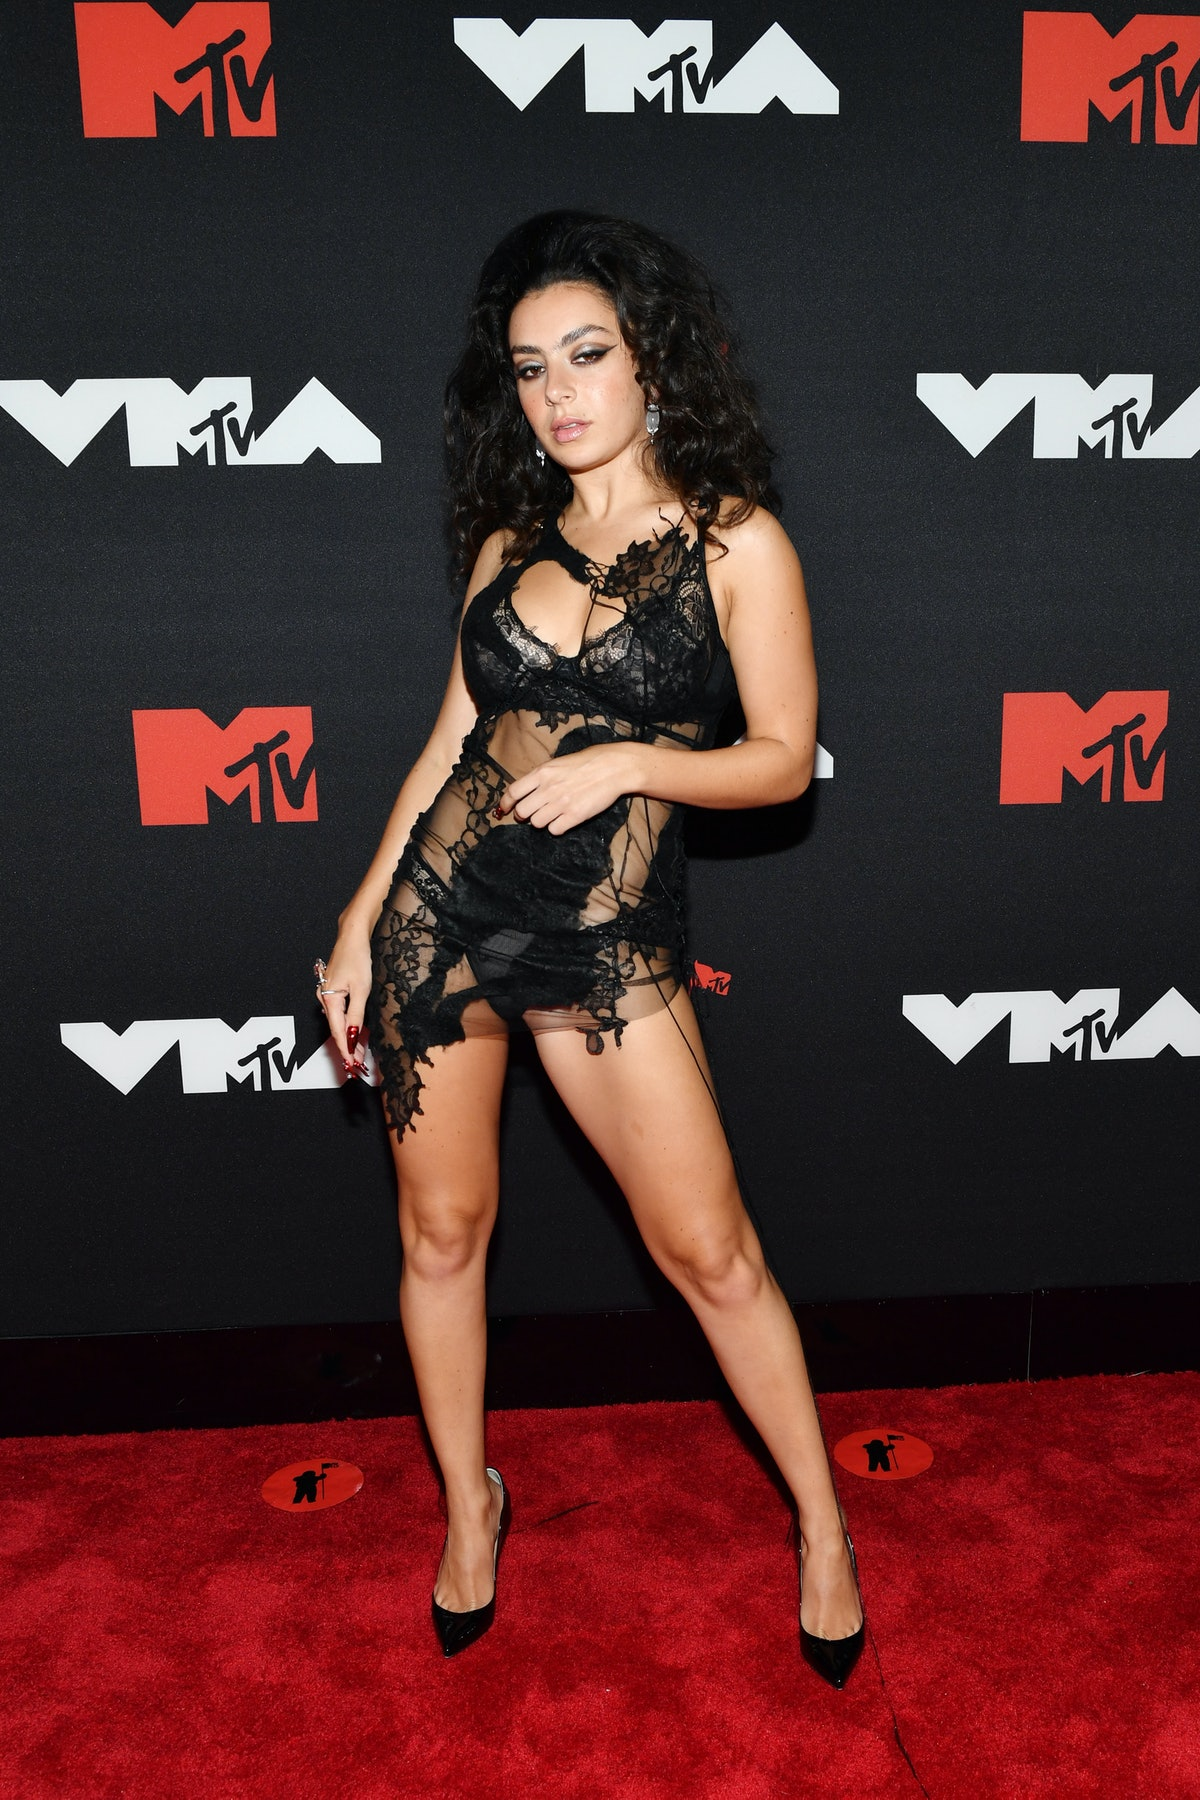 : Charli XCX attends the 2021 MTV Video Music Awards at Barclays Center on September 12, 2021 in the...